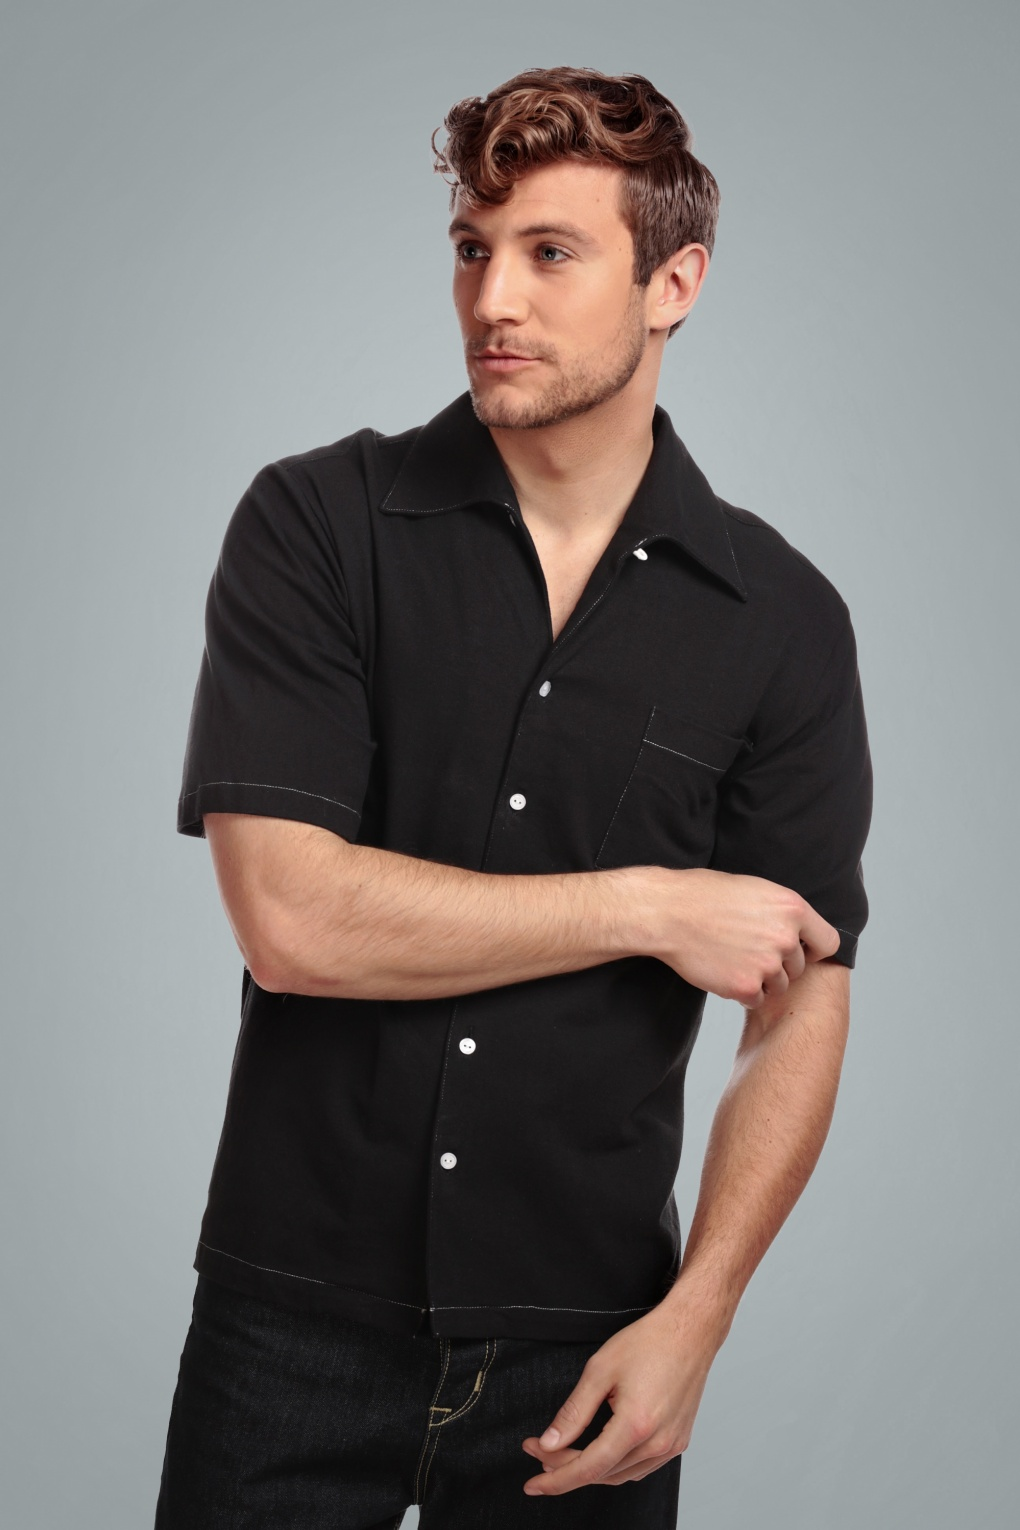 1950s Men's Shirt Styles – Dress Shirts to Casual Pullovers 50s Harry Haven Short Sleeved Shirt in Black £35.74 AT vintagedancer.com